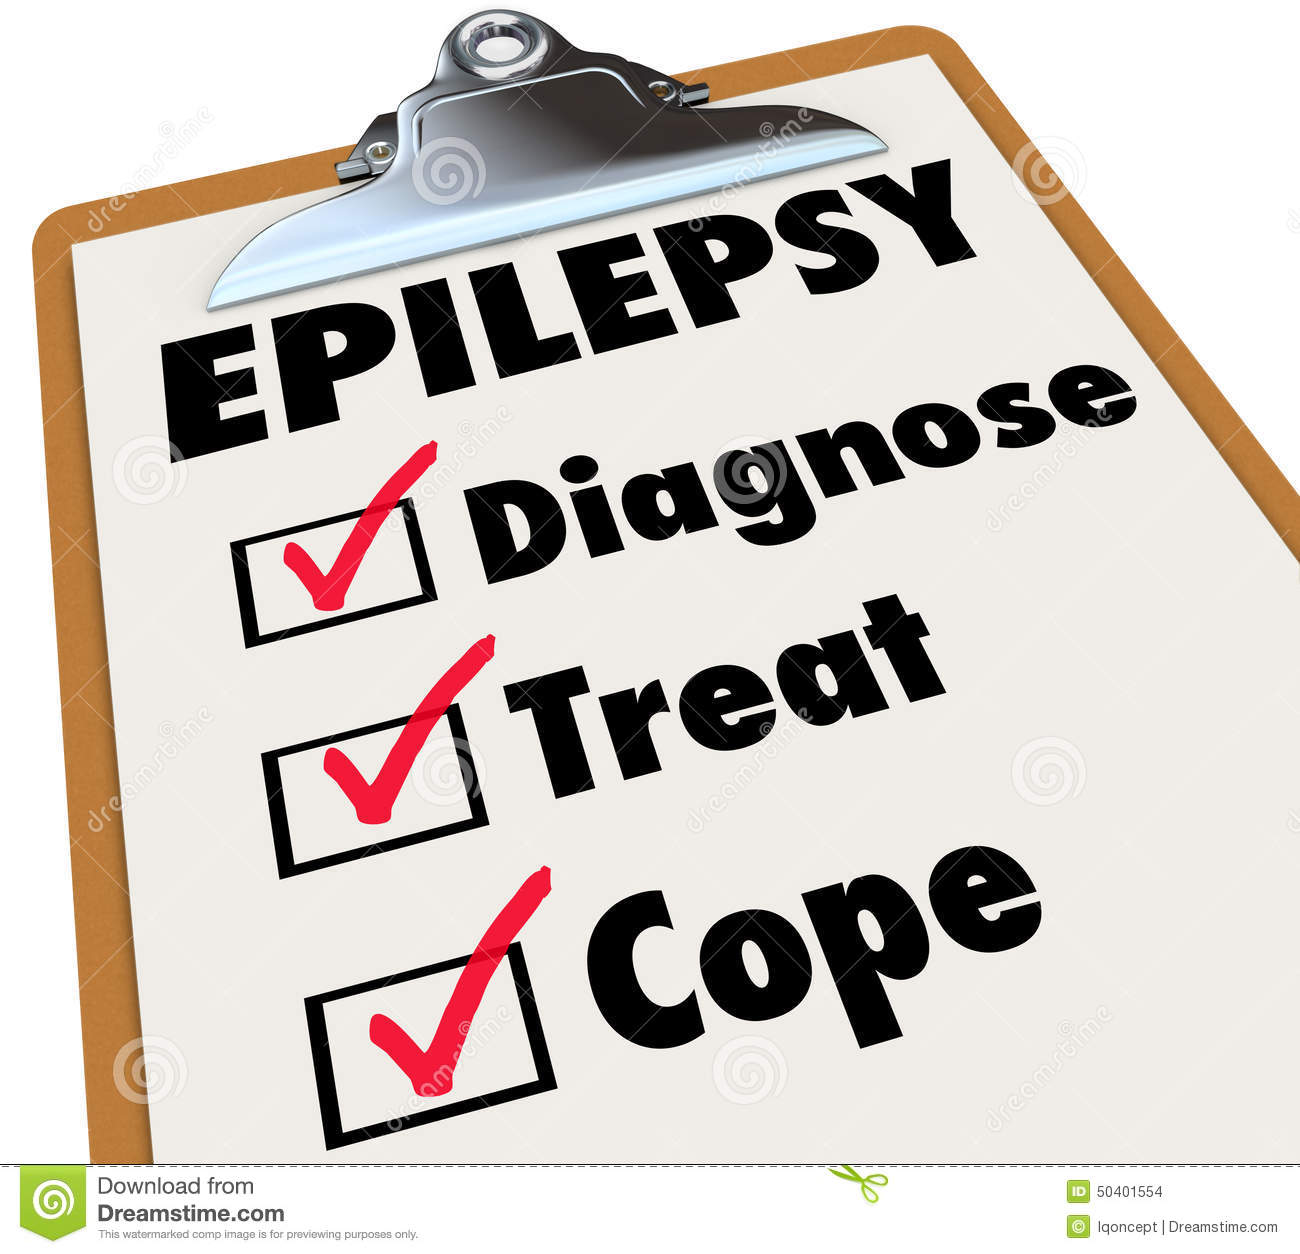 Epilepsy Check List Clipboard Diagnose Treat Cope With Disorder.